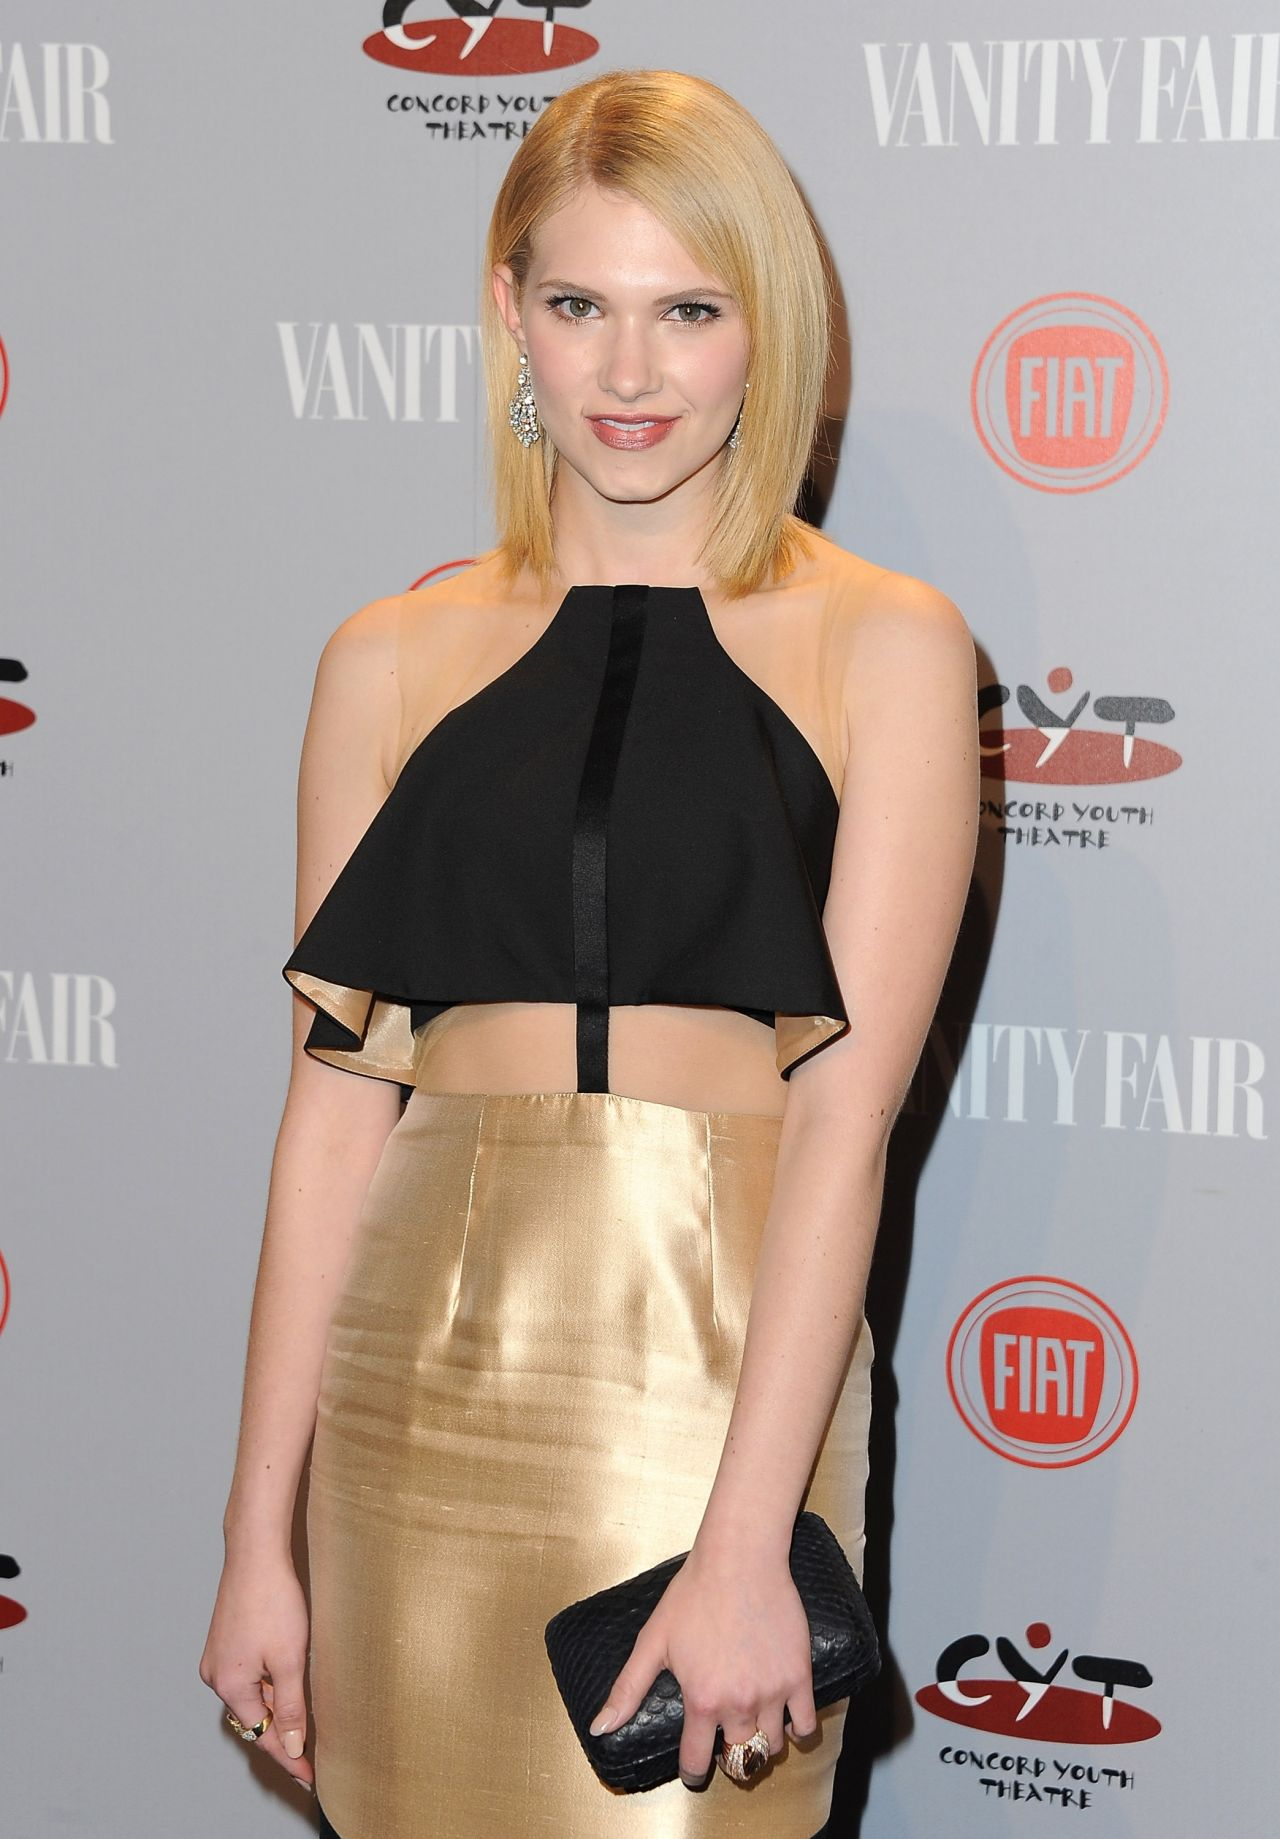 Claudia Lee - Vanity Fair & FIAT Young Hollywood Event in LA, February 2014